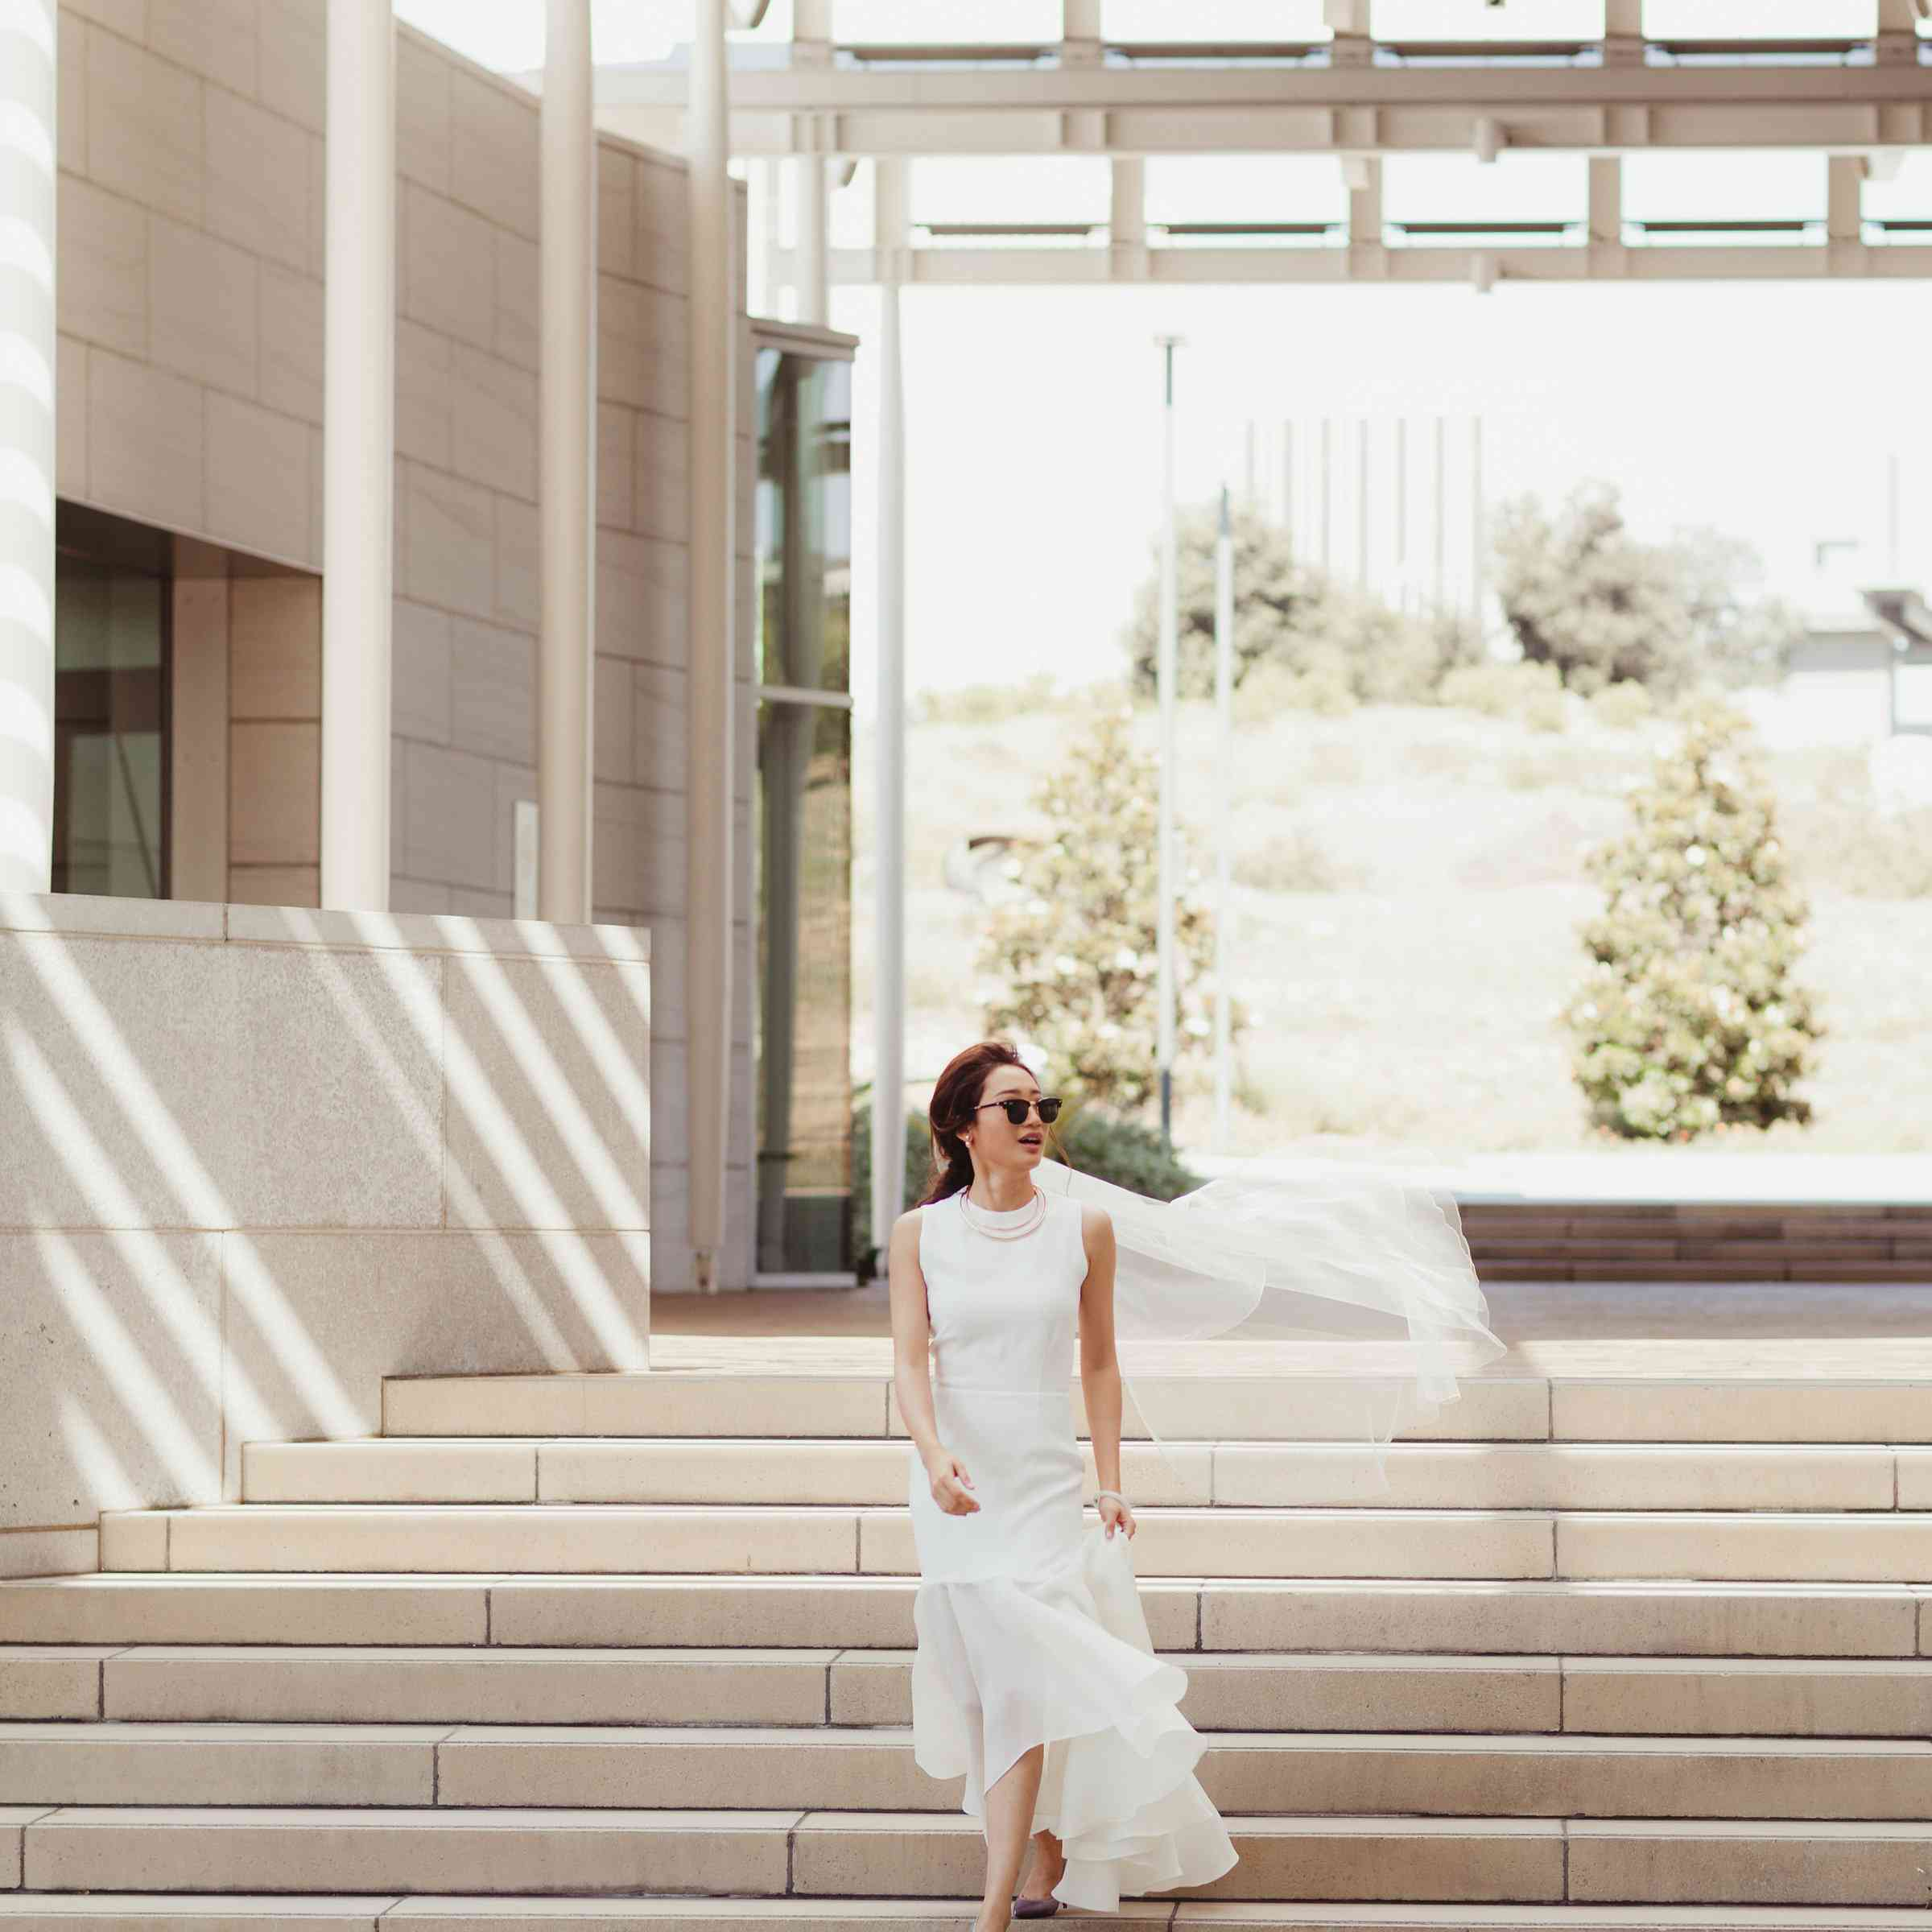 Bride in sunglasses on stairs